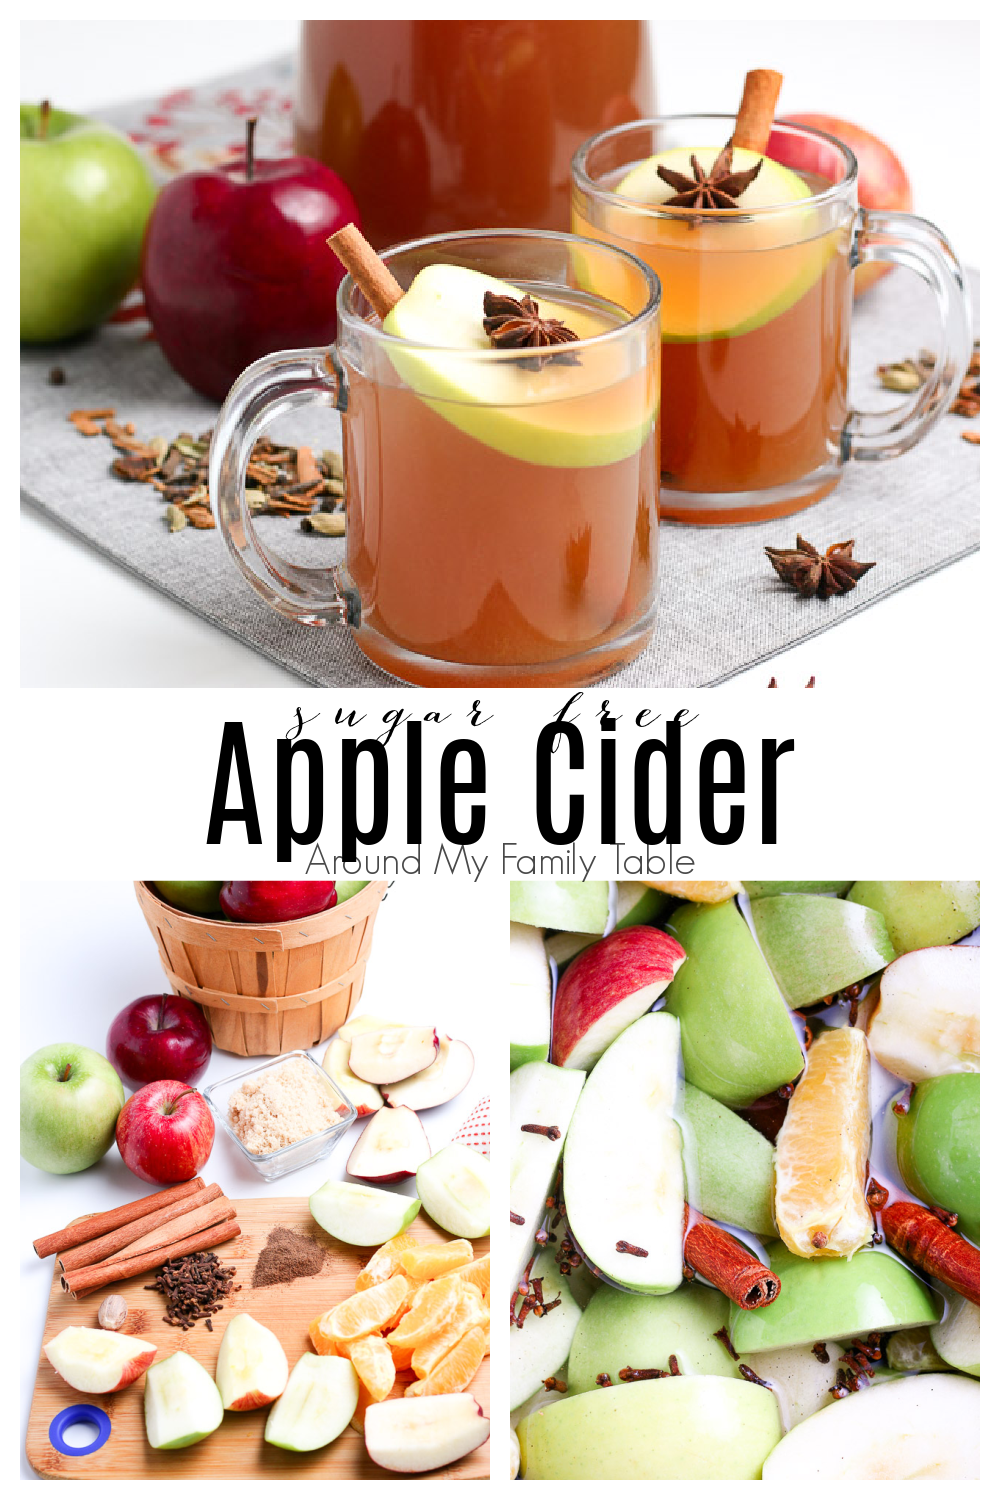 Sugar Free Apple Cider is the best way to warm up on a cool day.  Lots of spices, fresh apples, and your favorite brown sugar replacement makes a delicious fall drink that's perfect for anyone, especially those on a low carb or keto diet or anyone watching their sugar intake.  via @slingmama